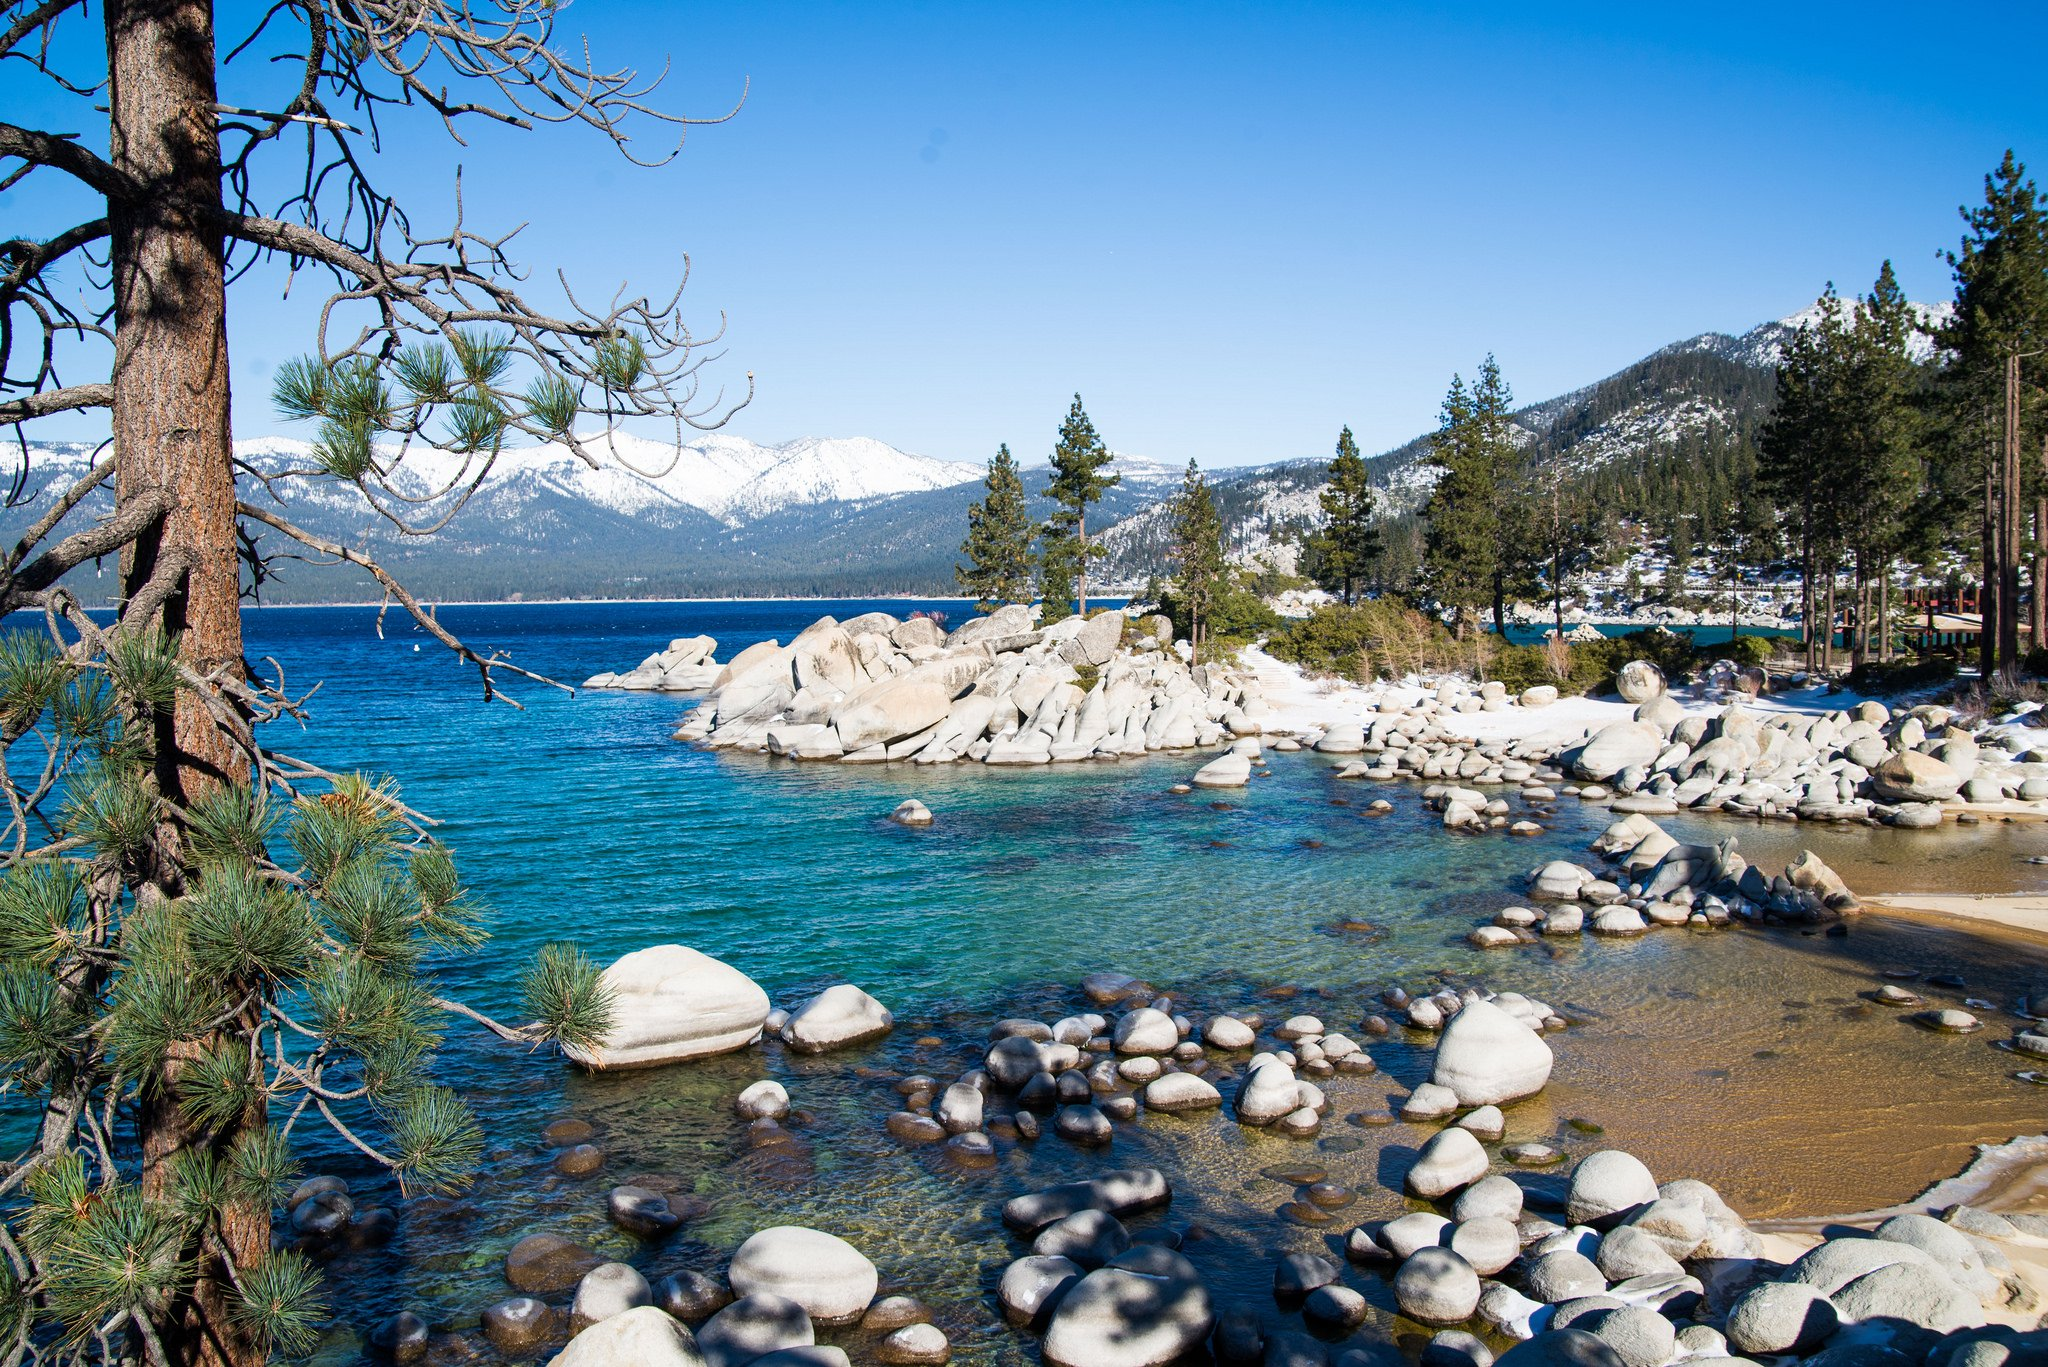 17 Easy Ways to Save Money on Your Next Trip - Lake Tahoe, California, USA